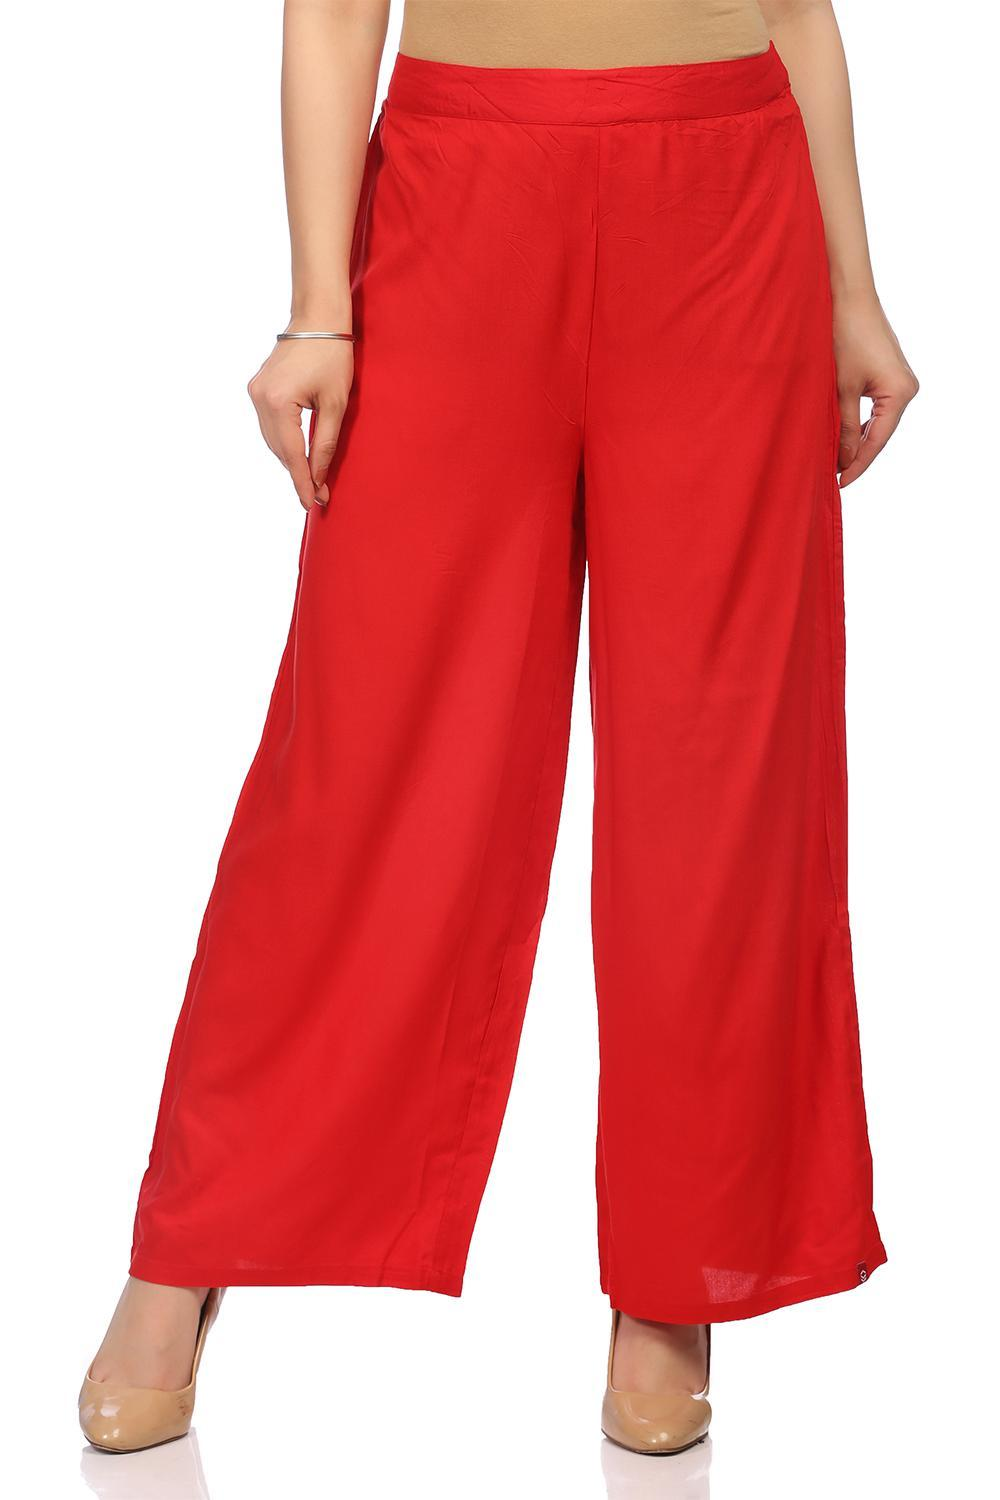 Red Viscose Palazzo - CORE13902SS18RED